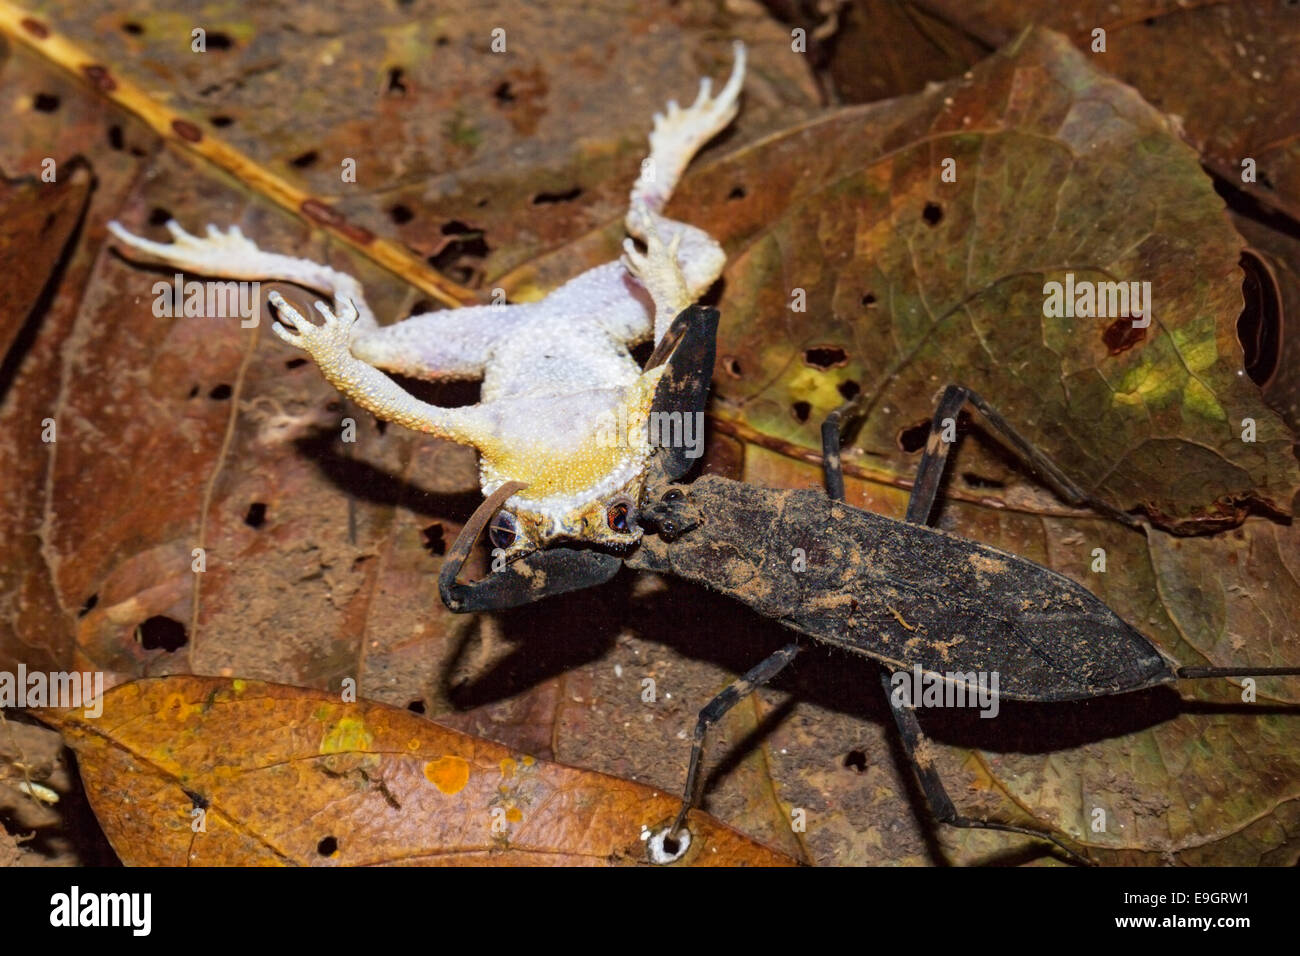 A water scorpion preys on a Malayan Dwarf Toad (Ingerophrynus divergens) at night in a tropical rainforest in Thailand - Stock Image